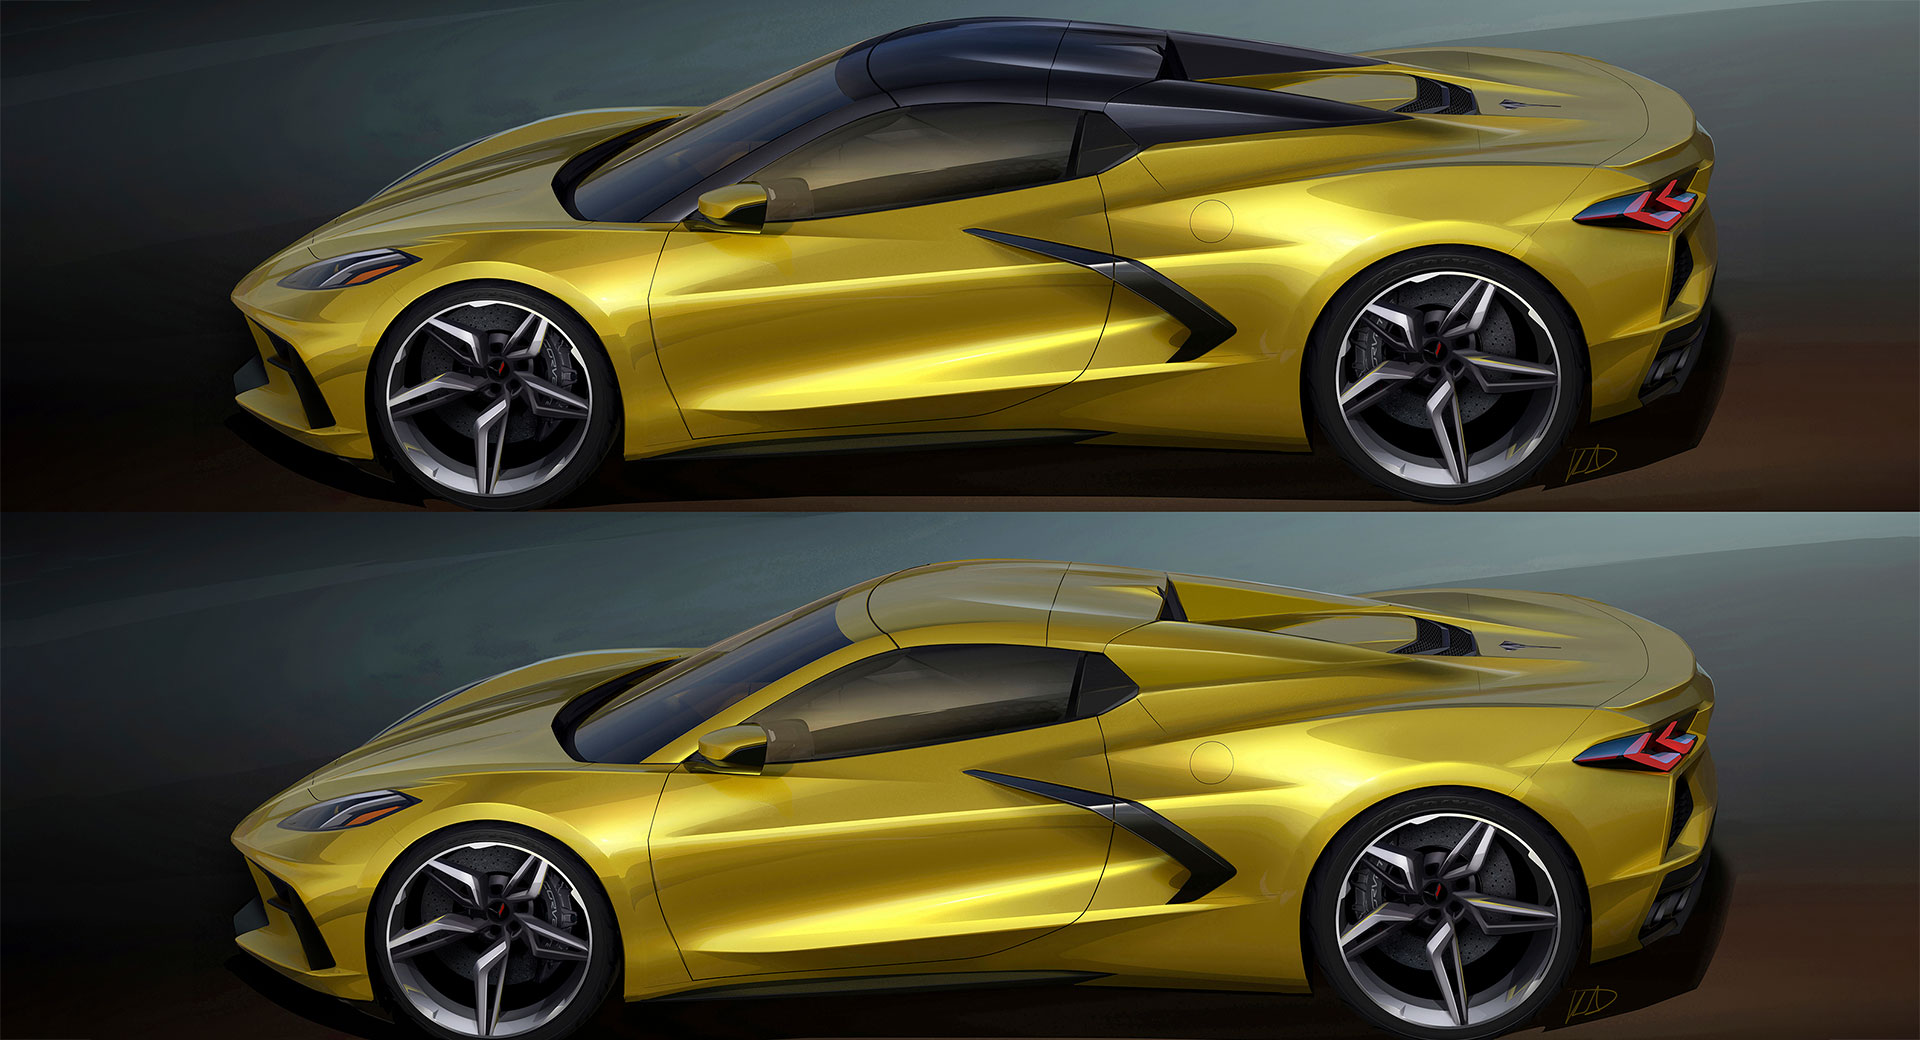 2020 Corvette Convertible Only Weighs About 80 Pounds More ...